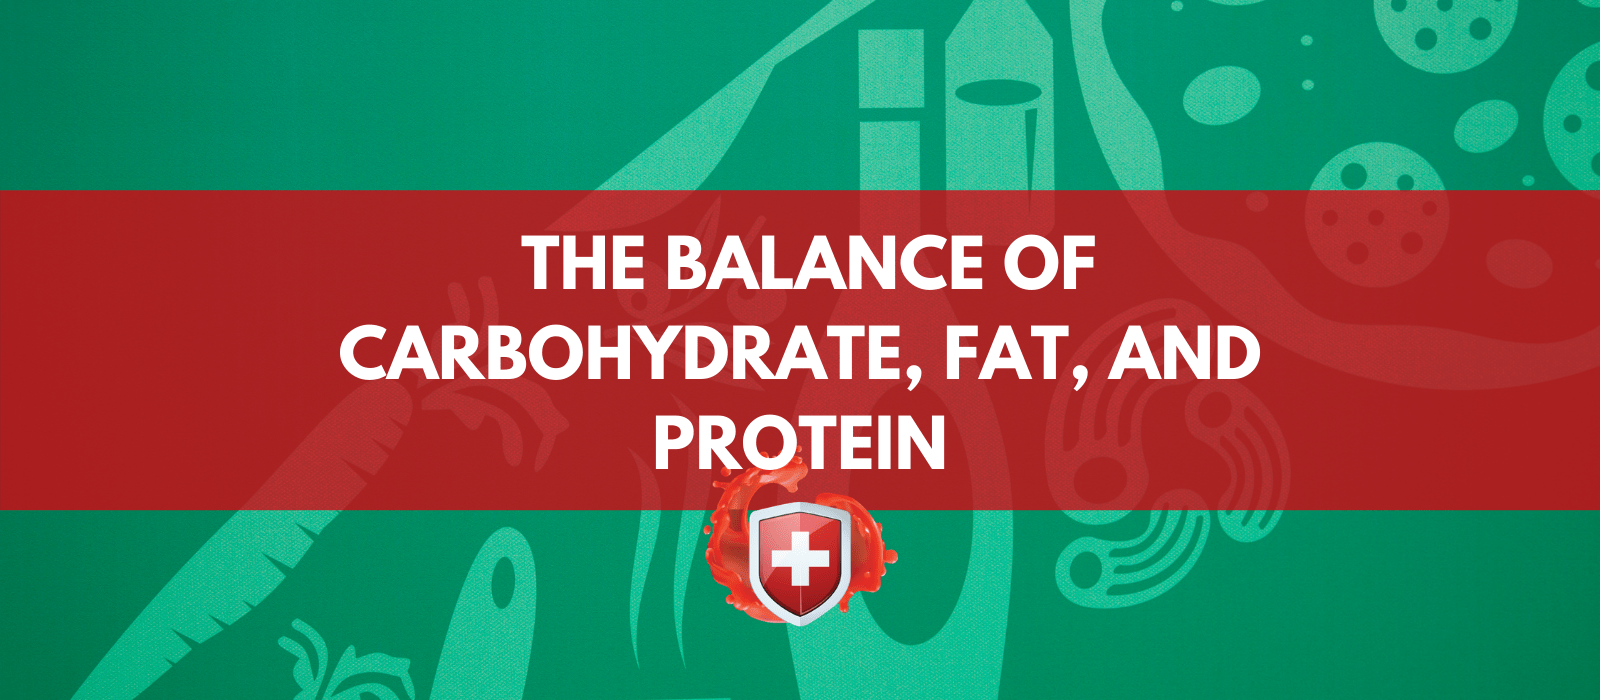 What is the Right Balance of Carbohydrate, Fat, and Protein